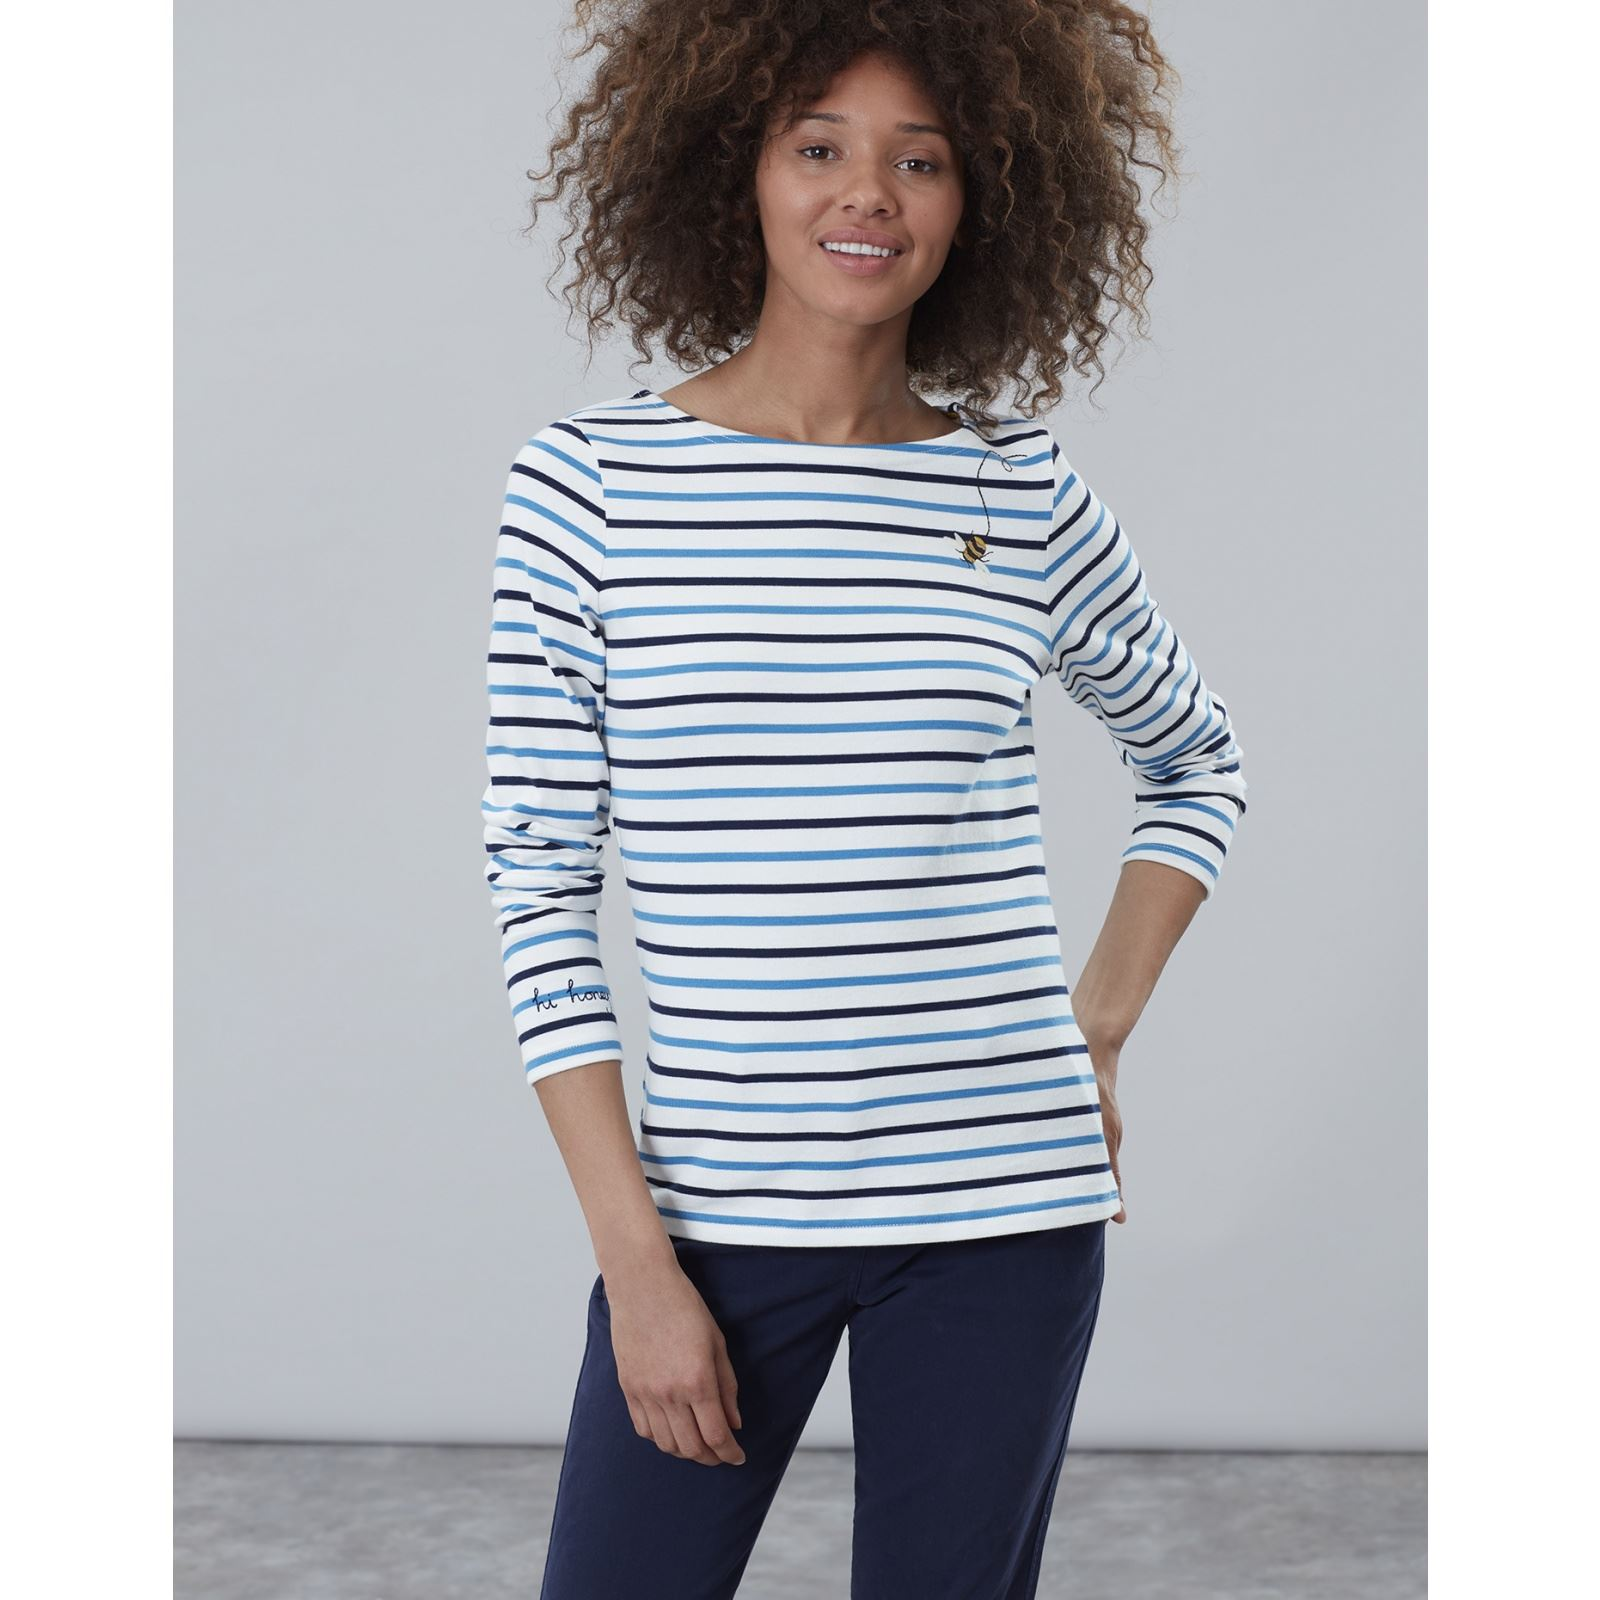 Joules-Harbour-Bordado-Manga-Larga-Jersey-Top-Mas-Colores miniatura 11